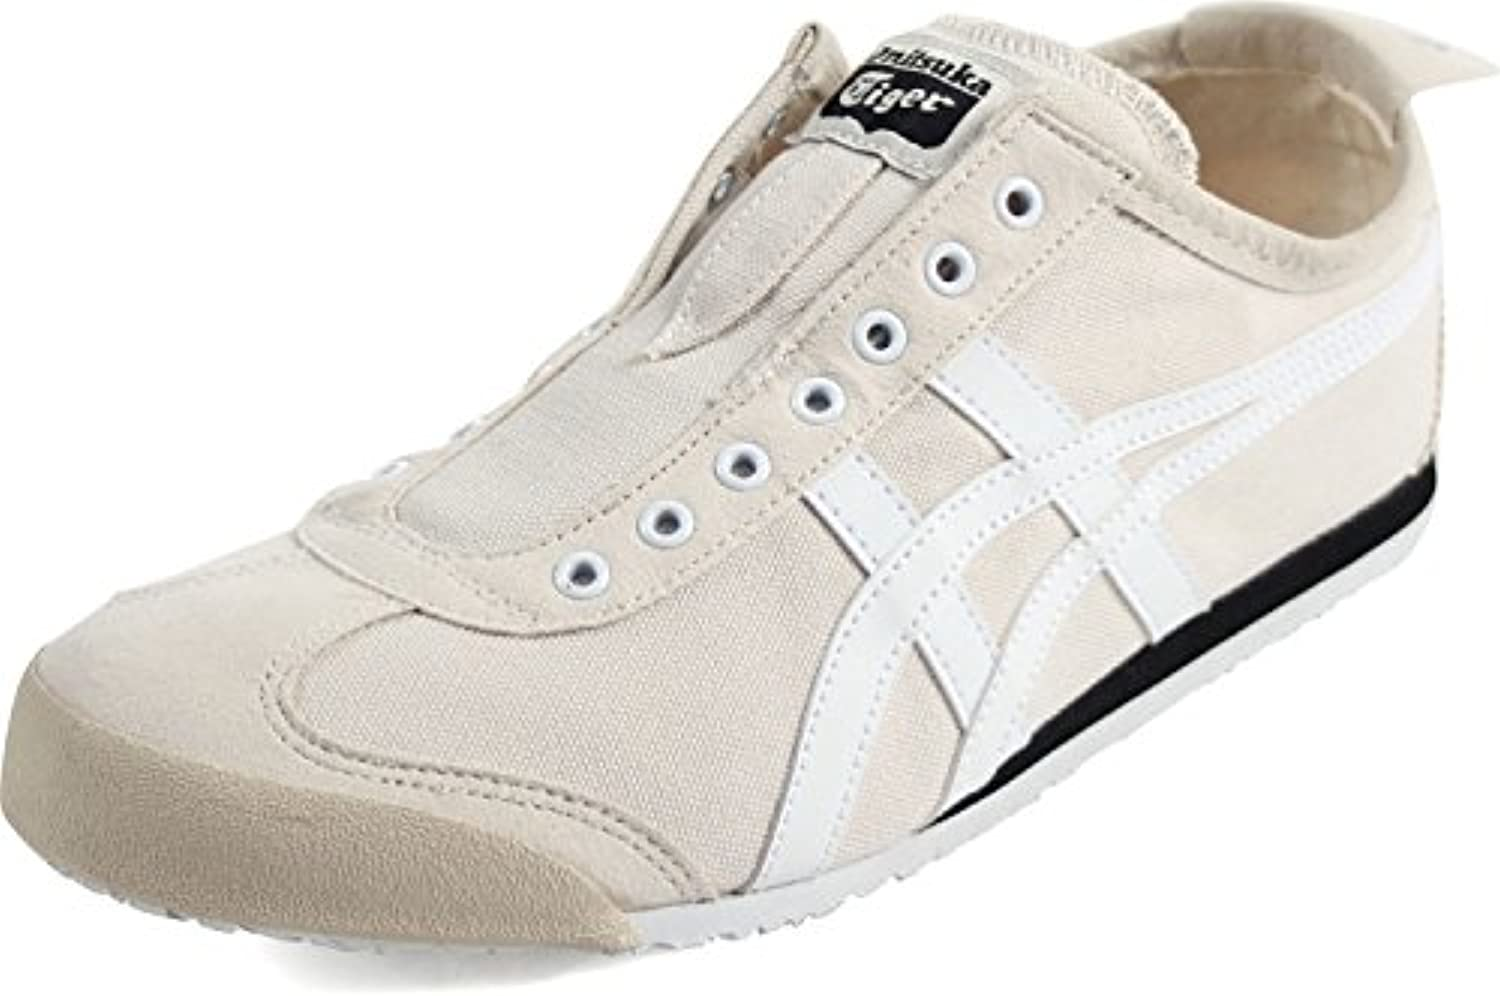 Onitsuka Tiger by Asics Mexico 66 Slip-On Textile Turnschuhe